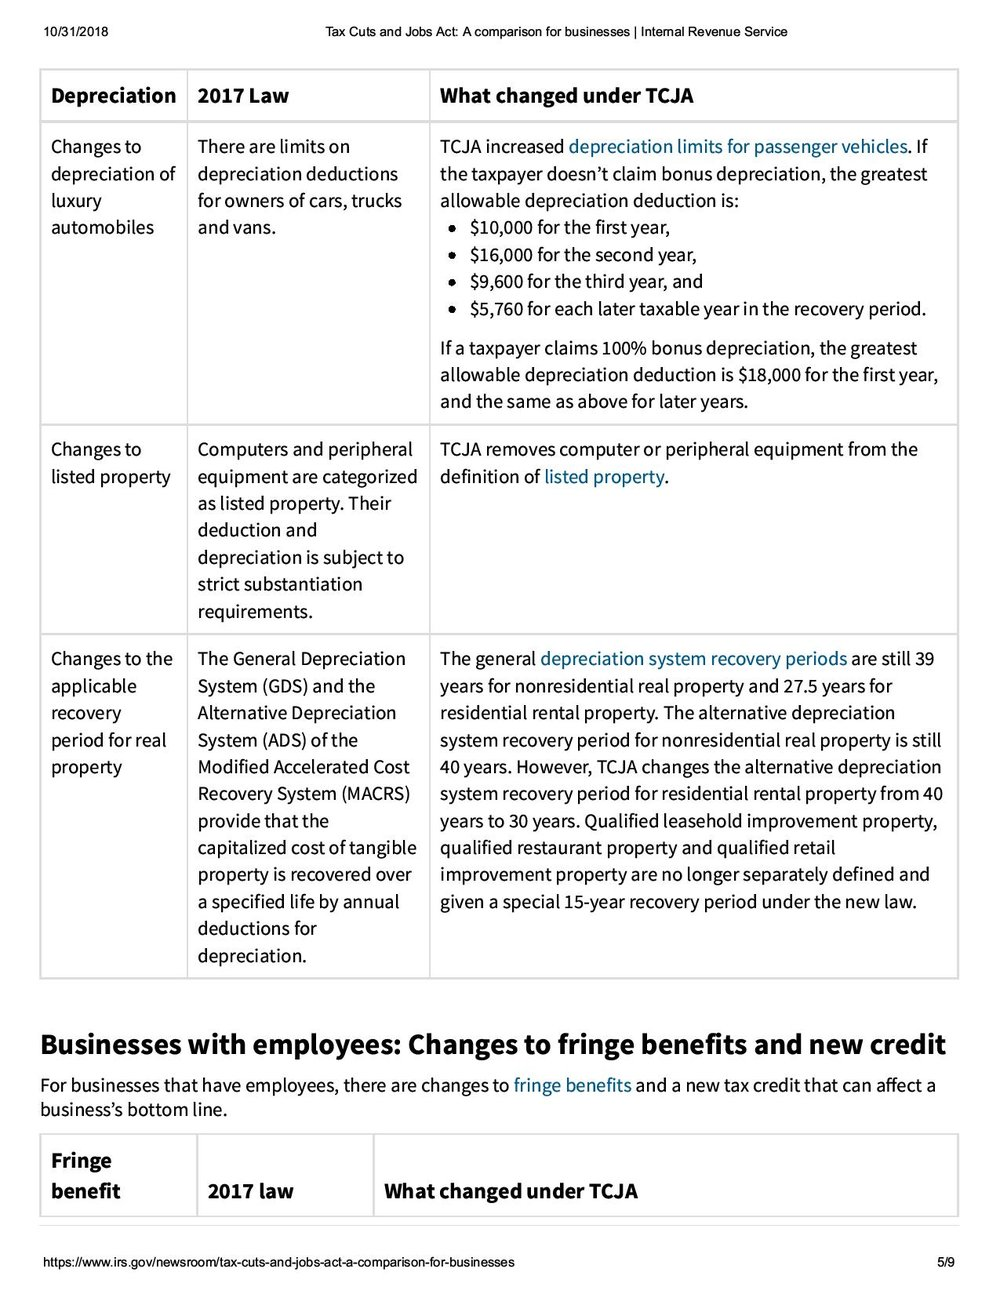 IRS Summary of Key Business Tax Law Changes in the Tax Cuts and Jobs Act posted 1 Nov 2018-page-005.jpg